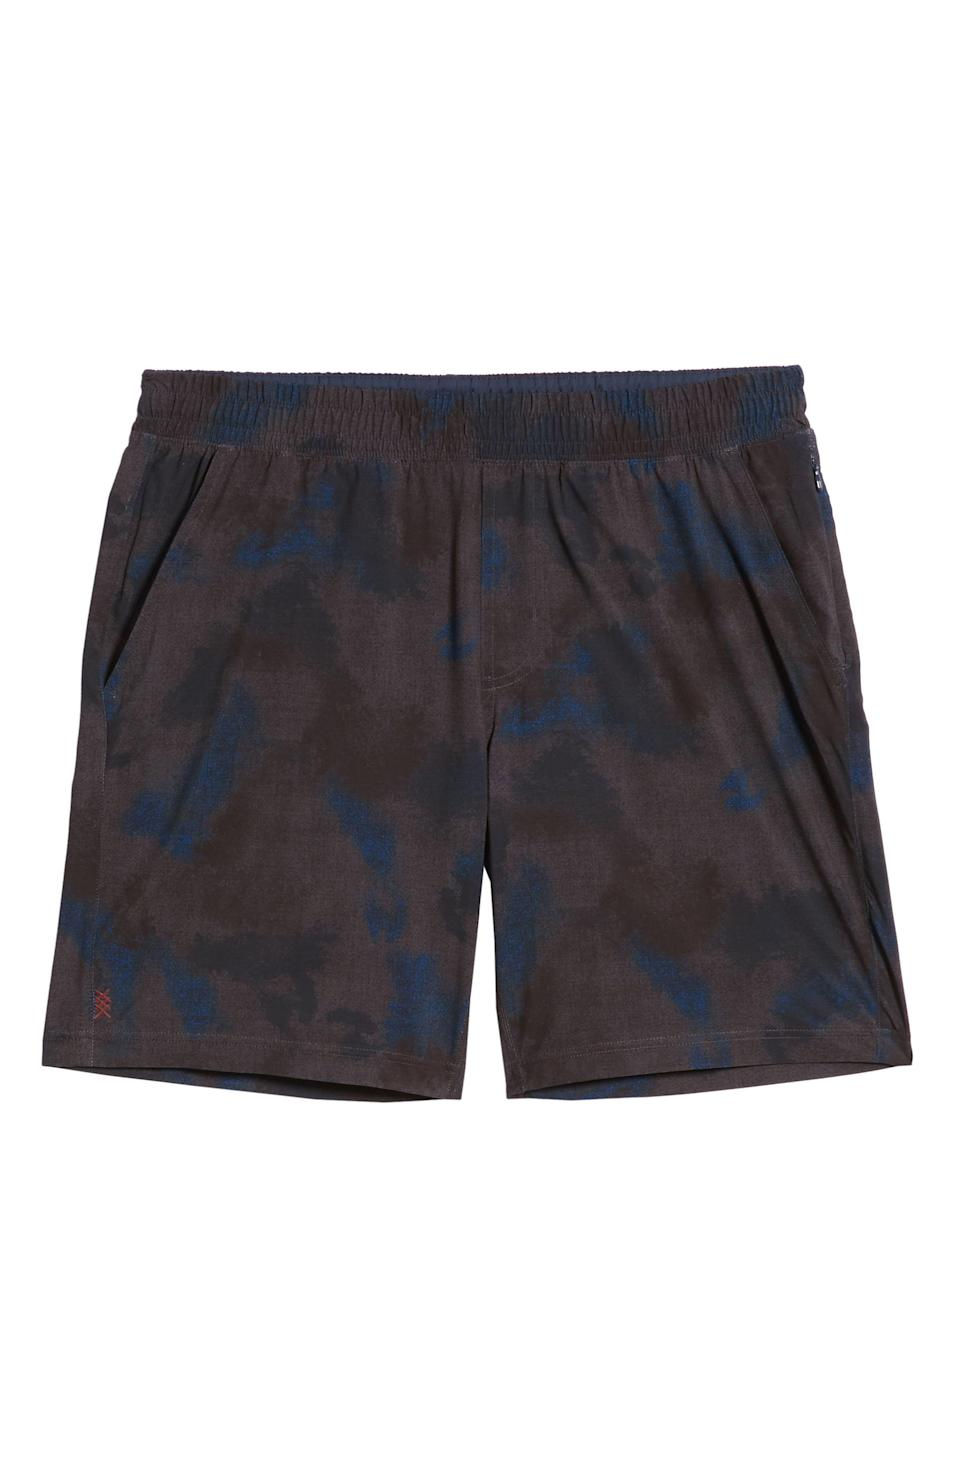 """<p><strong>RHONE</strong></p><p>nordstrom.com</p><p><a href=""""https://go.redirectingat.com?id=74968X1596630&url=https%3A%2F%2Fwww.nordstrom.com%2Fs%2Frhone-mako-athletic-shorts%2F5243535&sref=https%3A%2F%2Fwww.menshealth.com%2Fstyle%2Fg33510339%2Fnordstrom-anniversary-sale-2020%2F"""" rel=""""nofollow noopener"""" target=""""_blank"""" data-ylk=""""slk:BUY IT HERE"""" class=""""link rapid-noclick-resp"""">BUY IT HERE</a></p><p><del><strong>$68</strong></del> <strong>$42.90 (37% off)</strong></p><p>Now here's a pair of shorts that will transition nicely from your couch to a virtual workout class.</p>"""